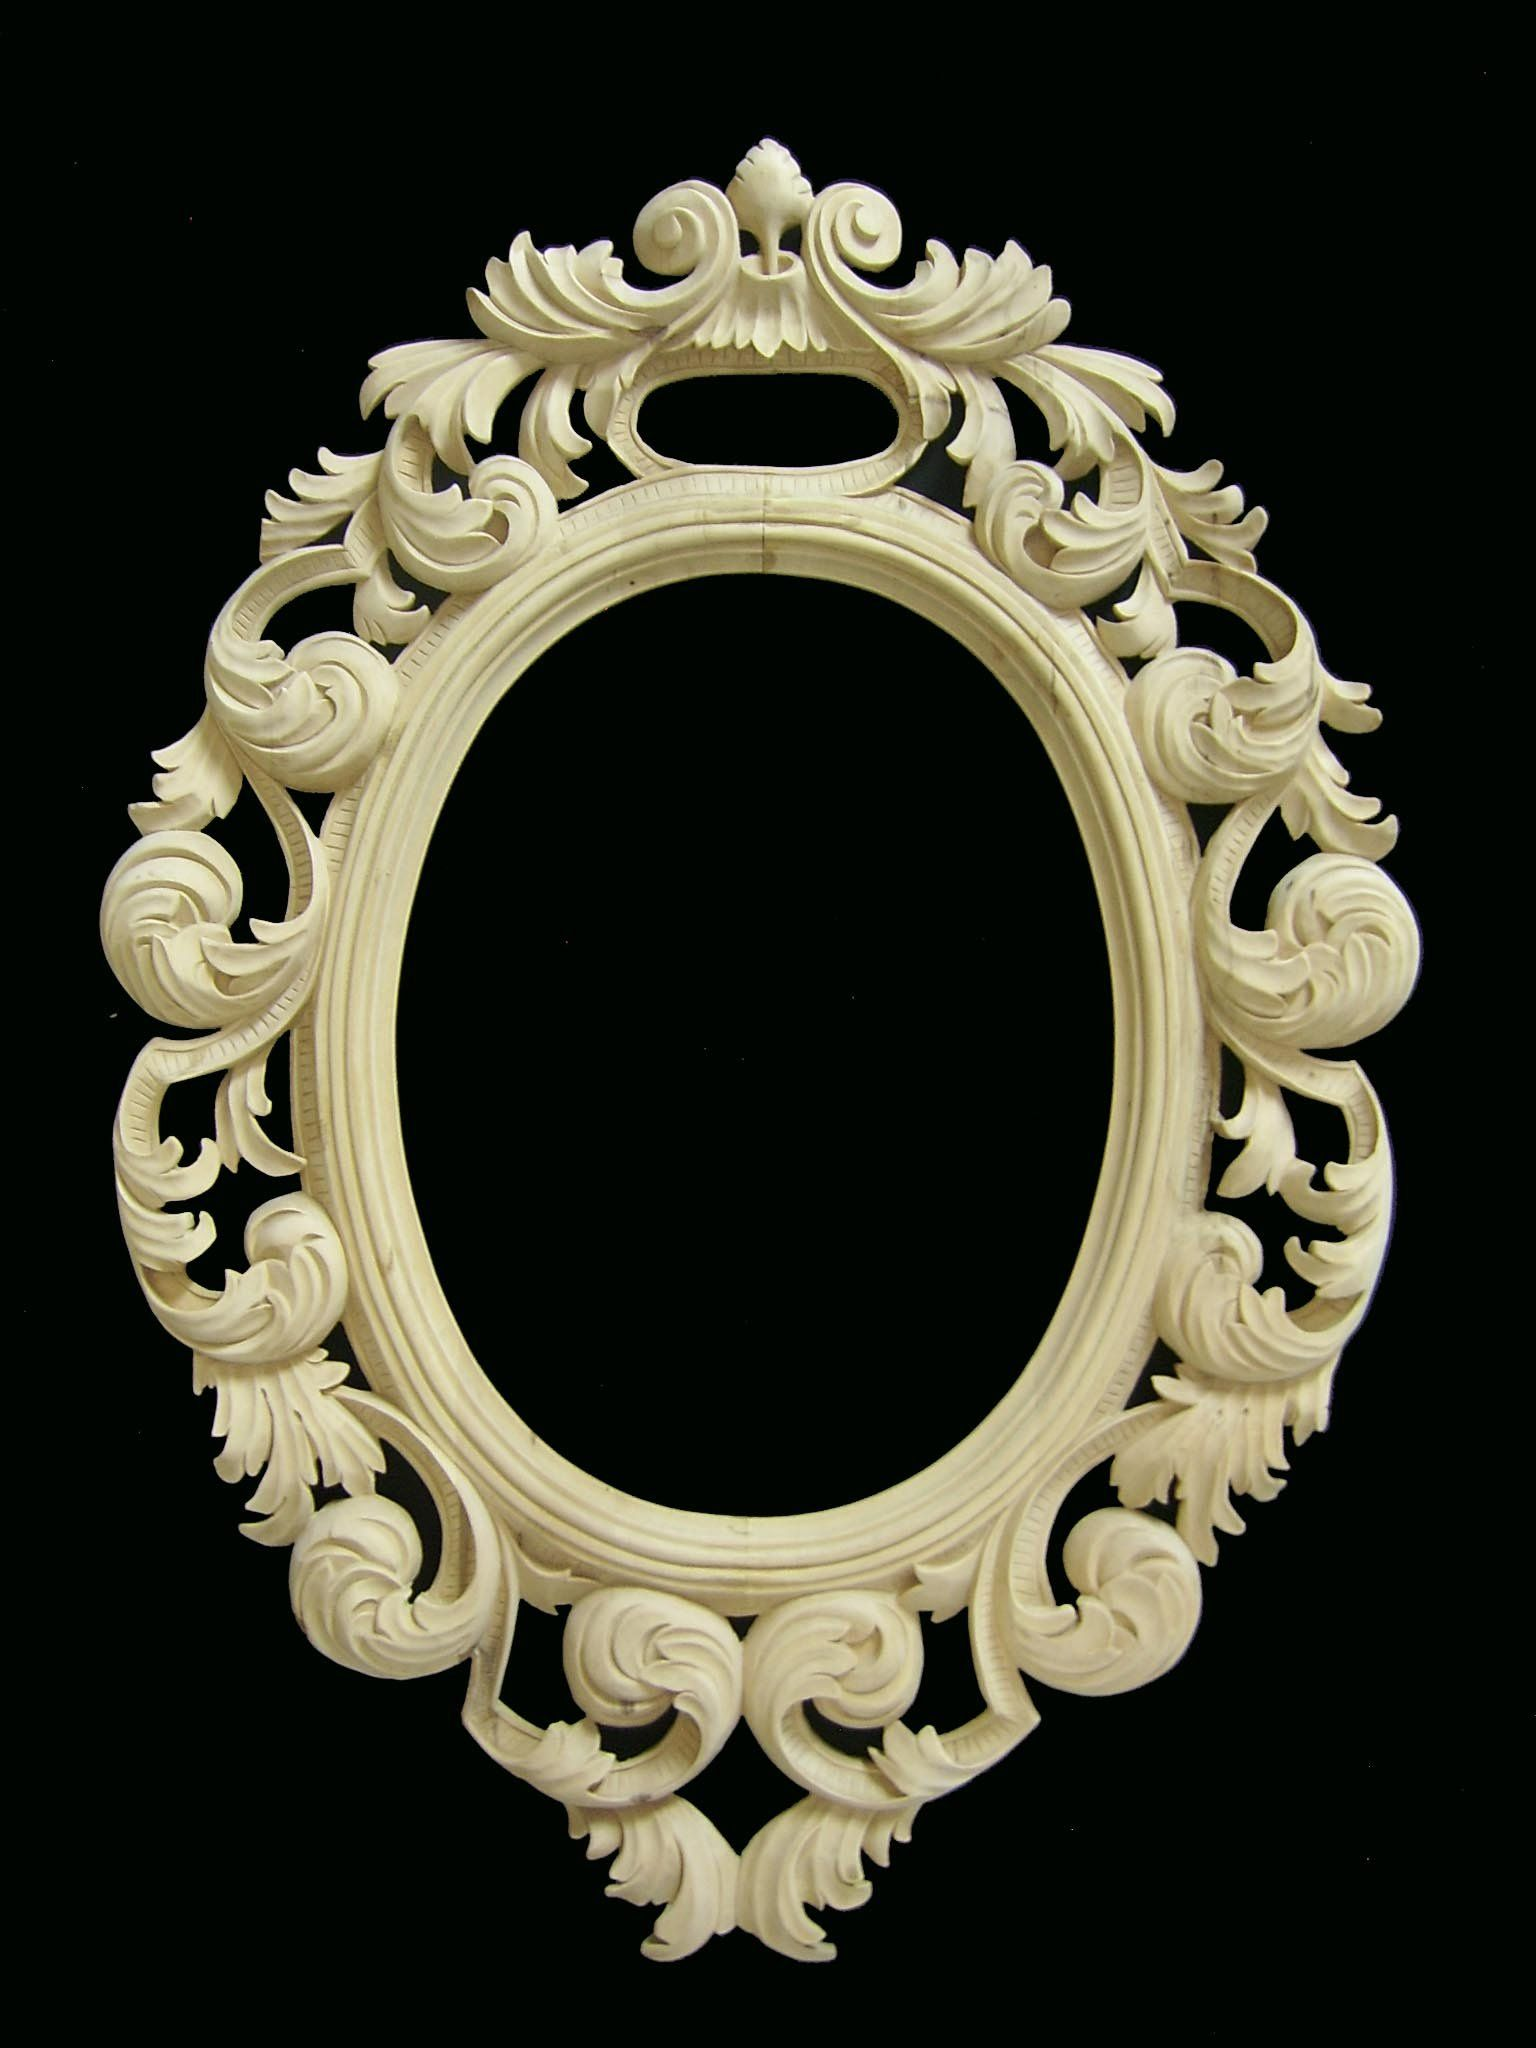 wooden mirror frame | Circus | Pinterest | Espejo, Marcos y Madera